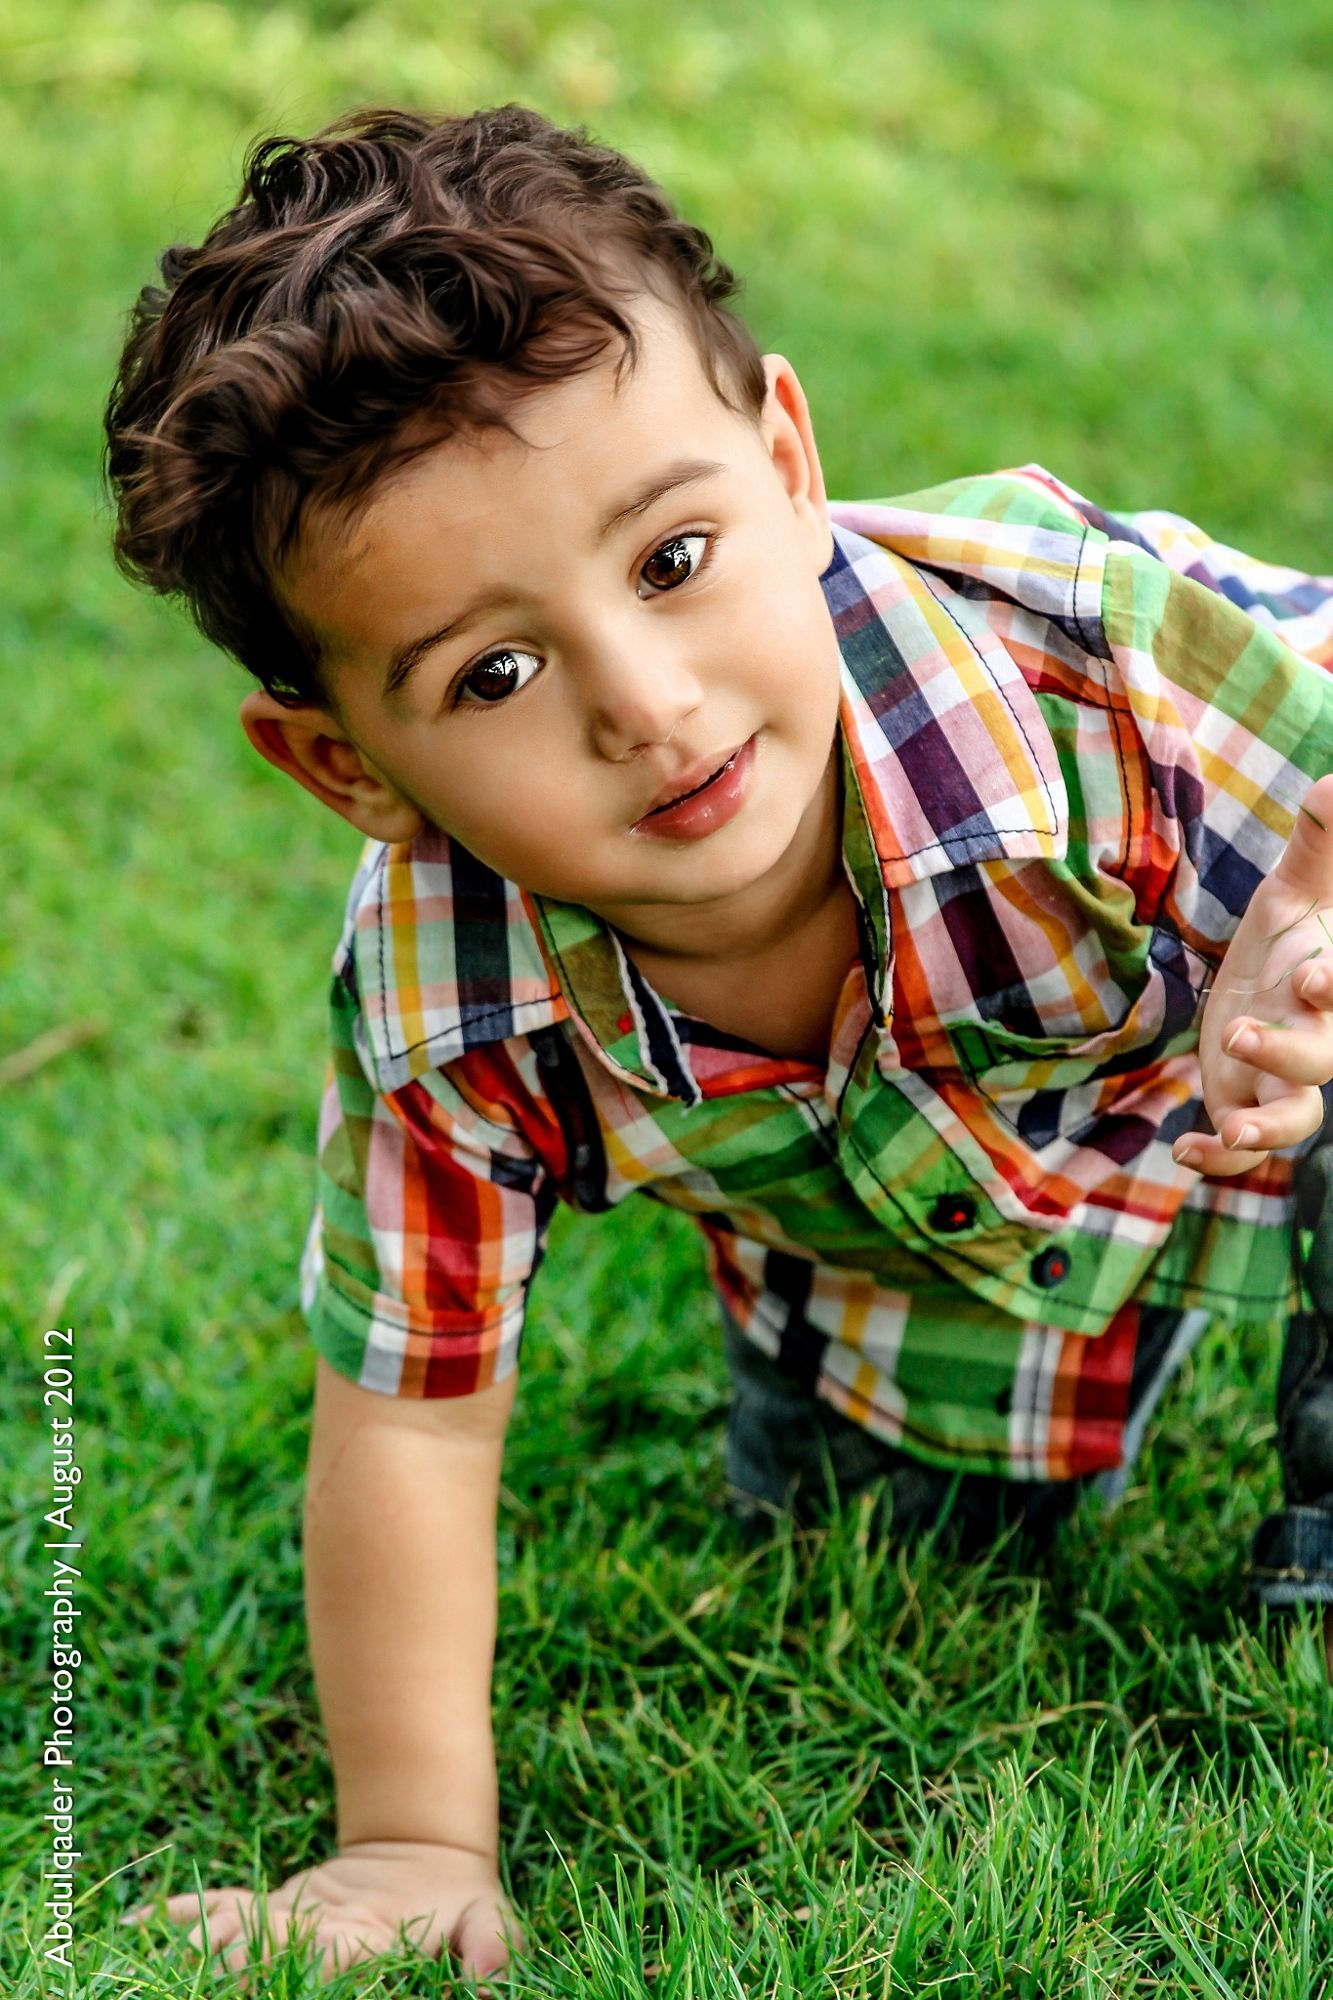 Little Boy by ShadowLight Photography (With images) | Boys ...